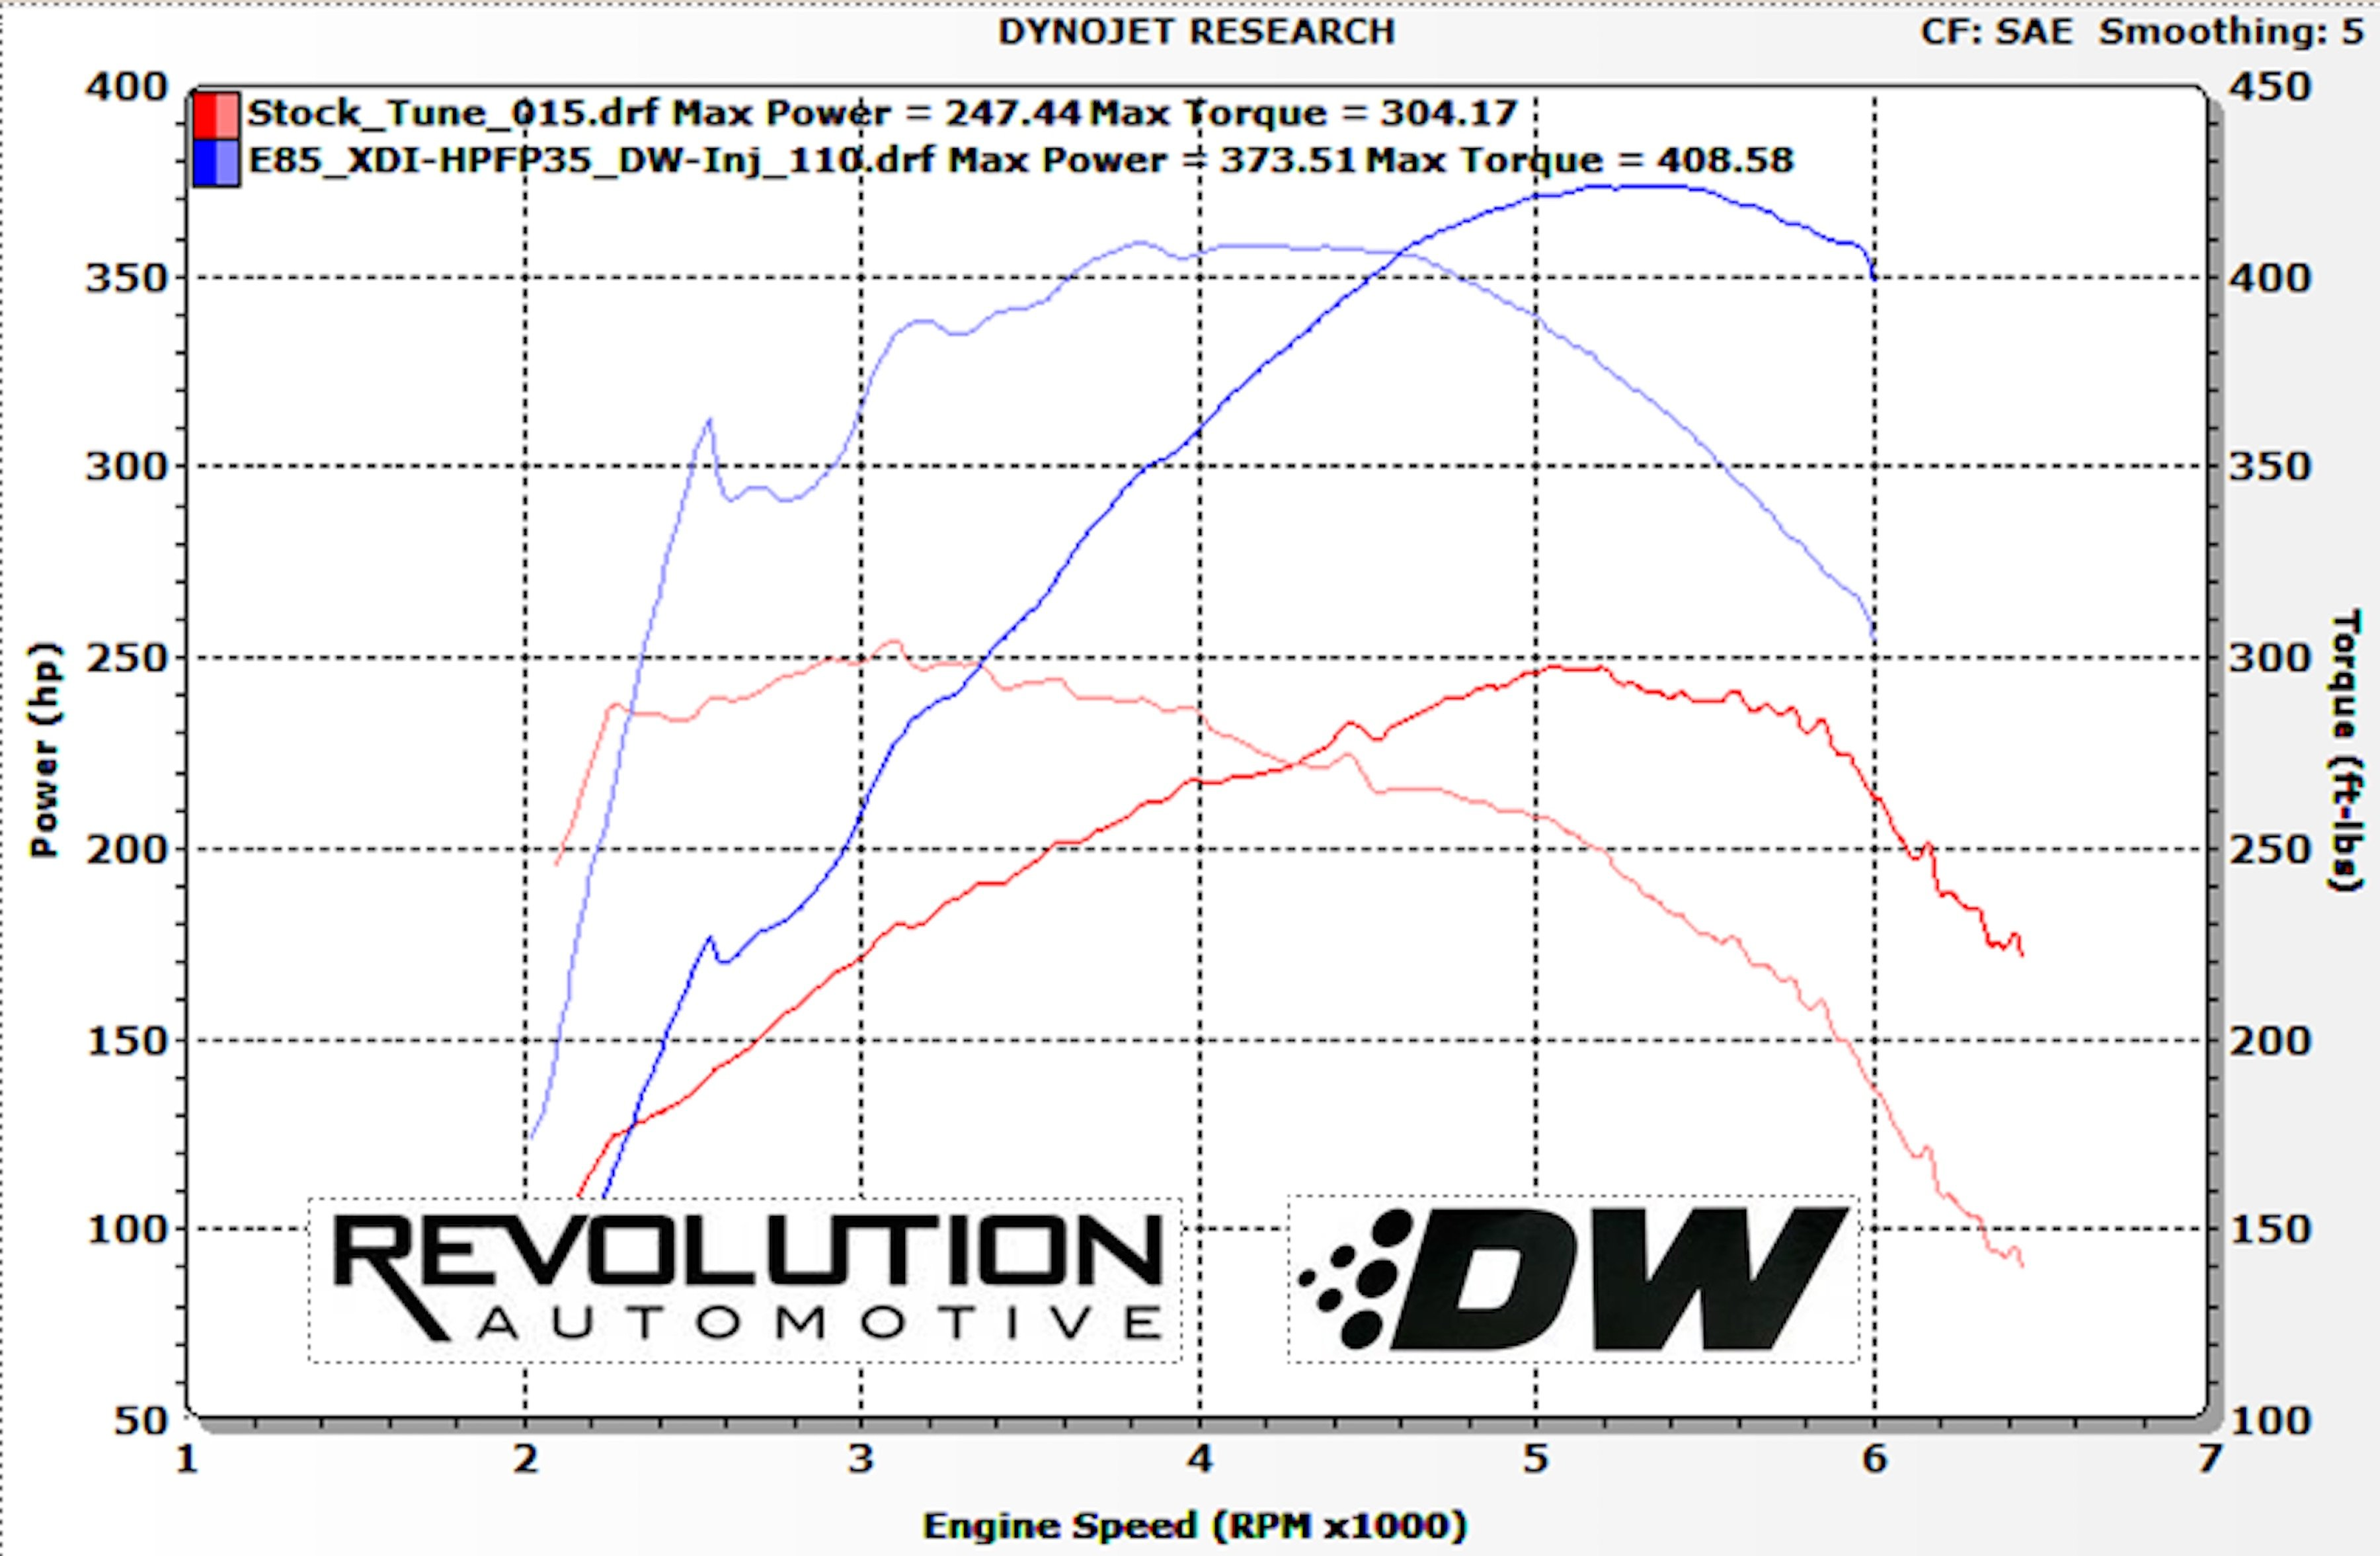 High Pressure Pump Tuning Unlocks Big Direct Injection Gains Bosch Diesel Fuel Diagram Car With The Addition Of Xtreme Di And Deatschwerks Injectors Ecoboost Mustang Can Be Tuned Up For Running Straight E85